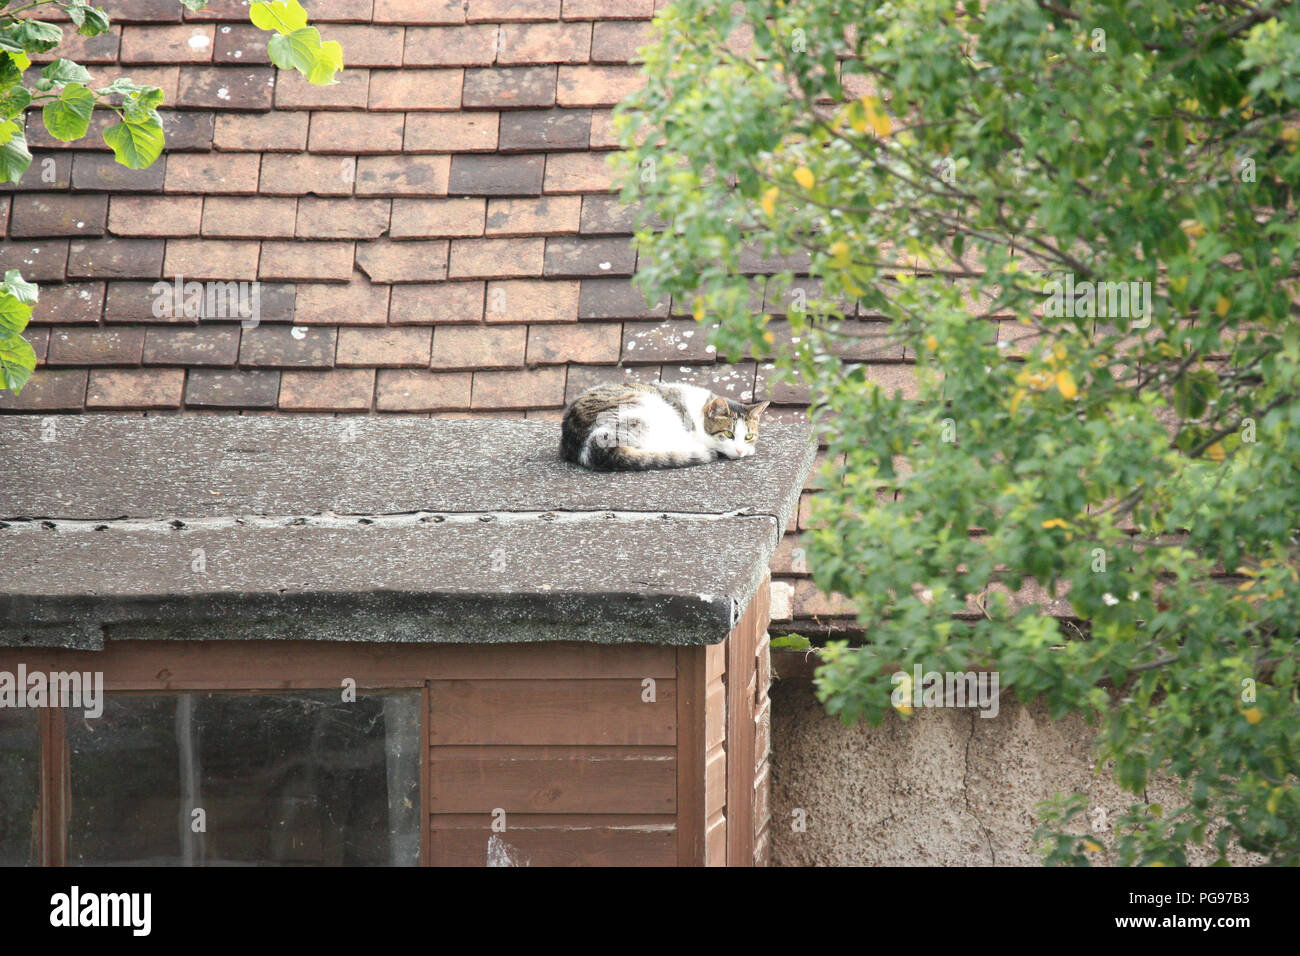 Tabby and white domestic shorthair cat snoozing in the sun in summer on the roof of a garden shed - Stock Image